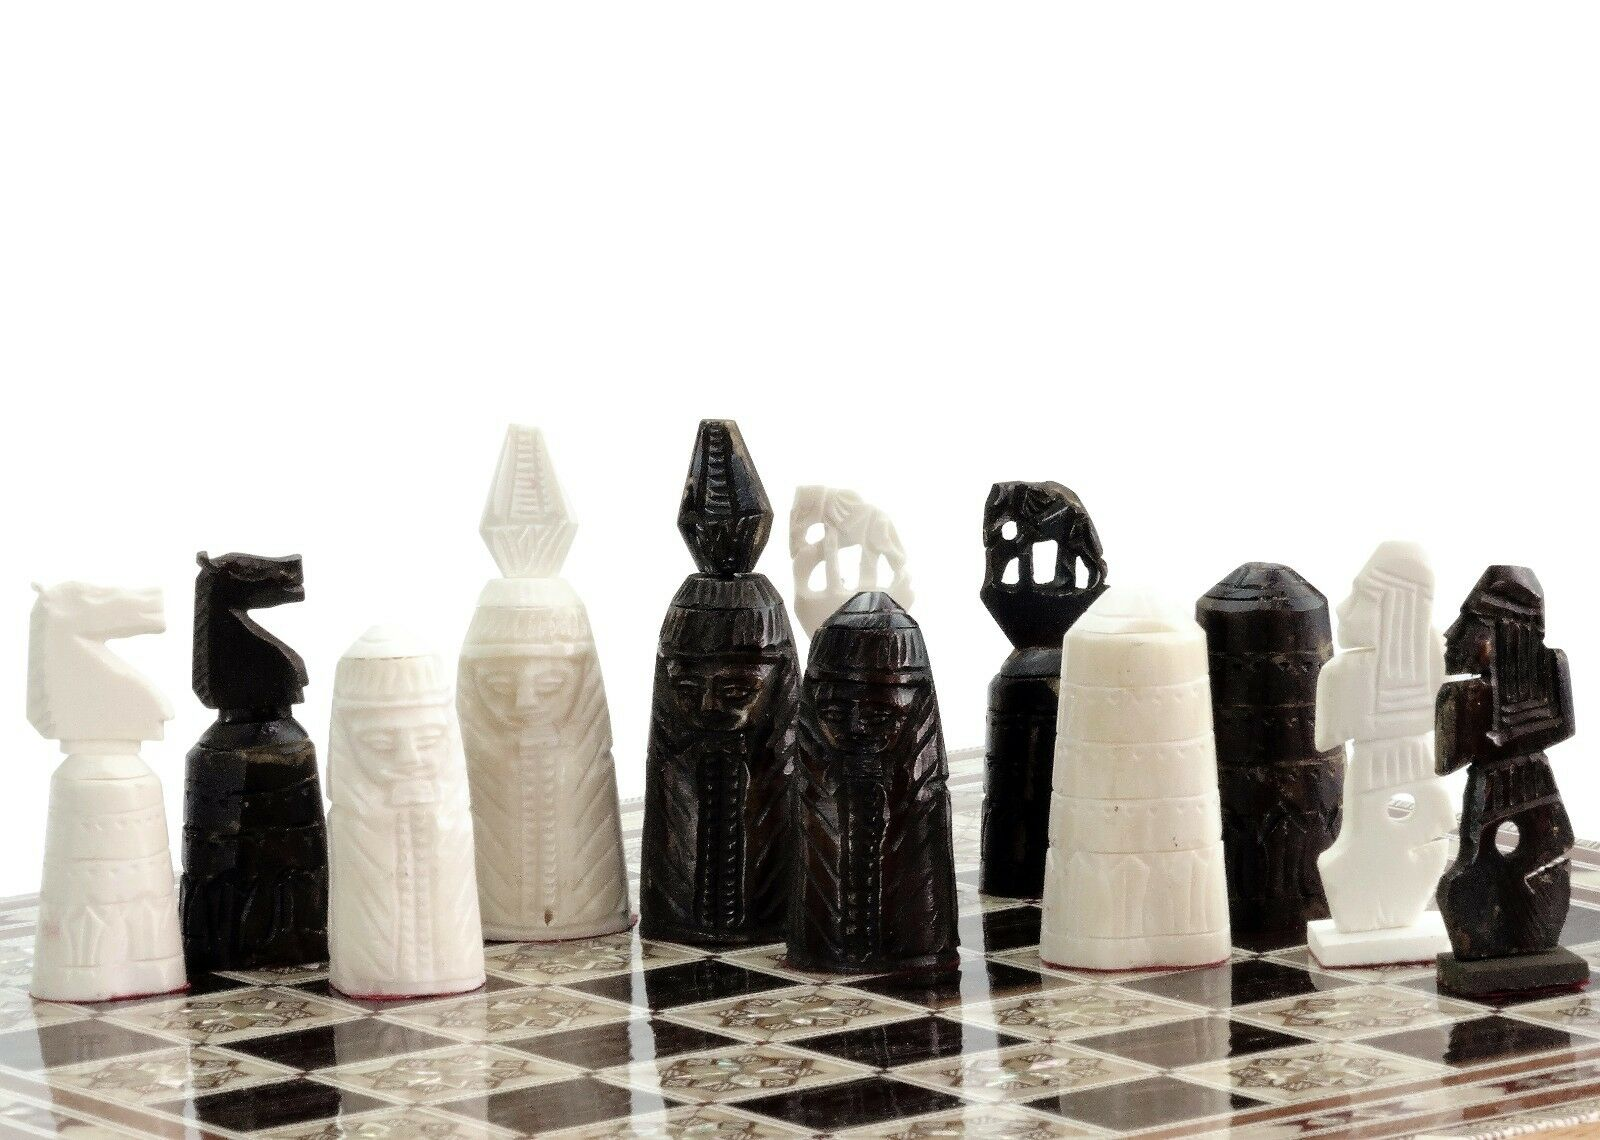 16  Camel bones Handmade Egyptian Mother of Pearl Inlaid Chess Set